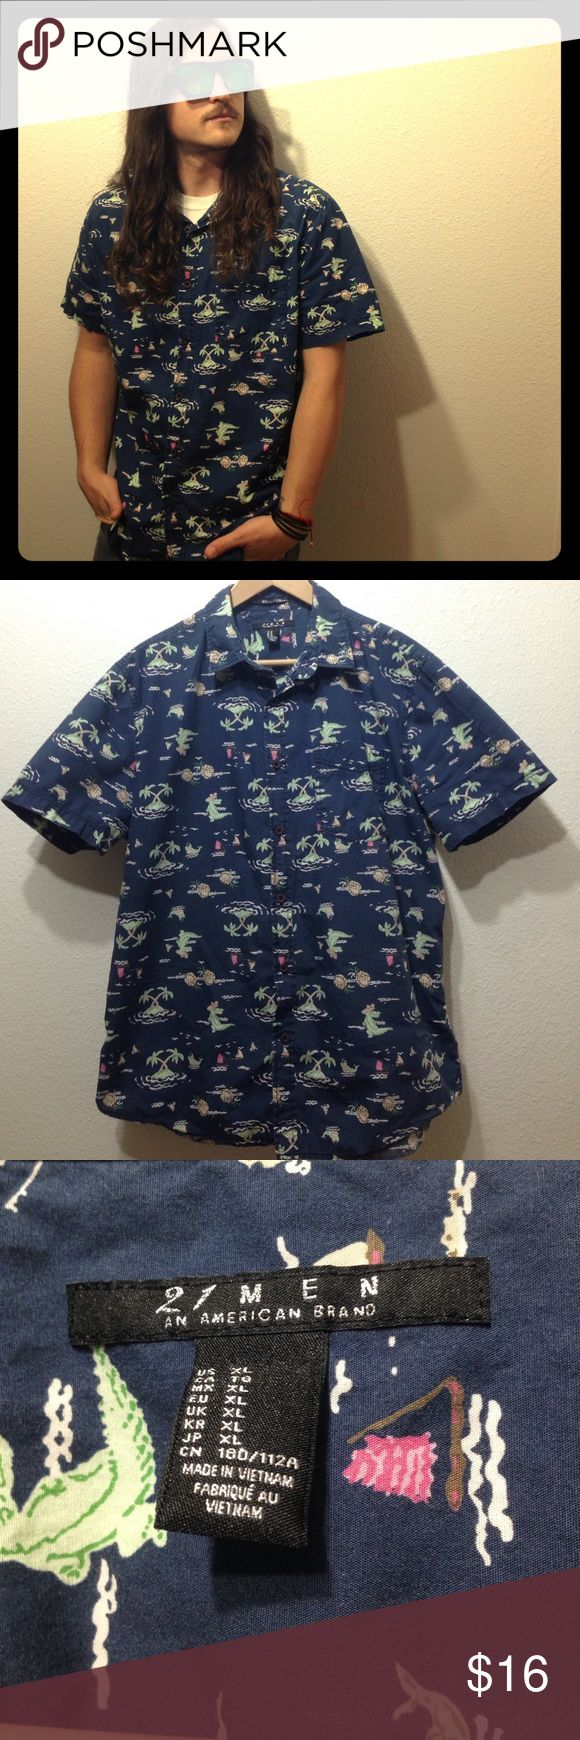 21Men Hawaiian Pineapple Alligator Palms Buttonup Preowned Size XL 💯 Cotton 21men Shirts Casual Button Down Shirts